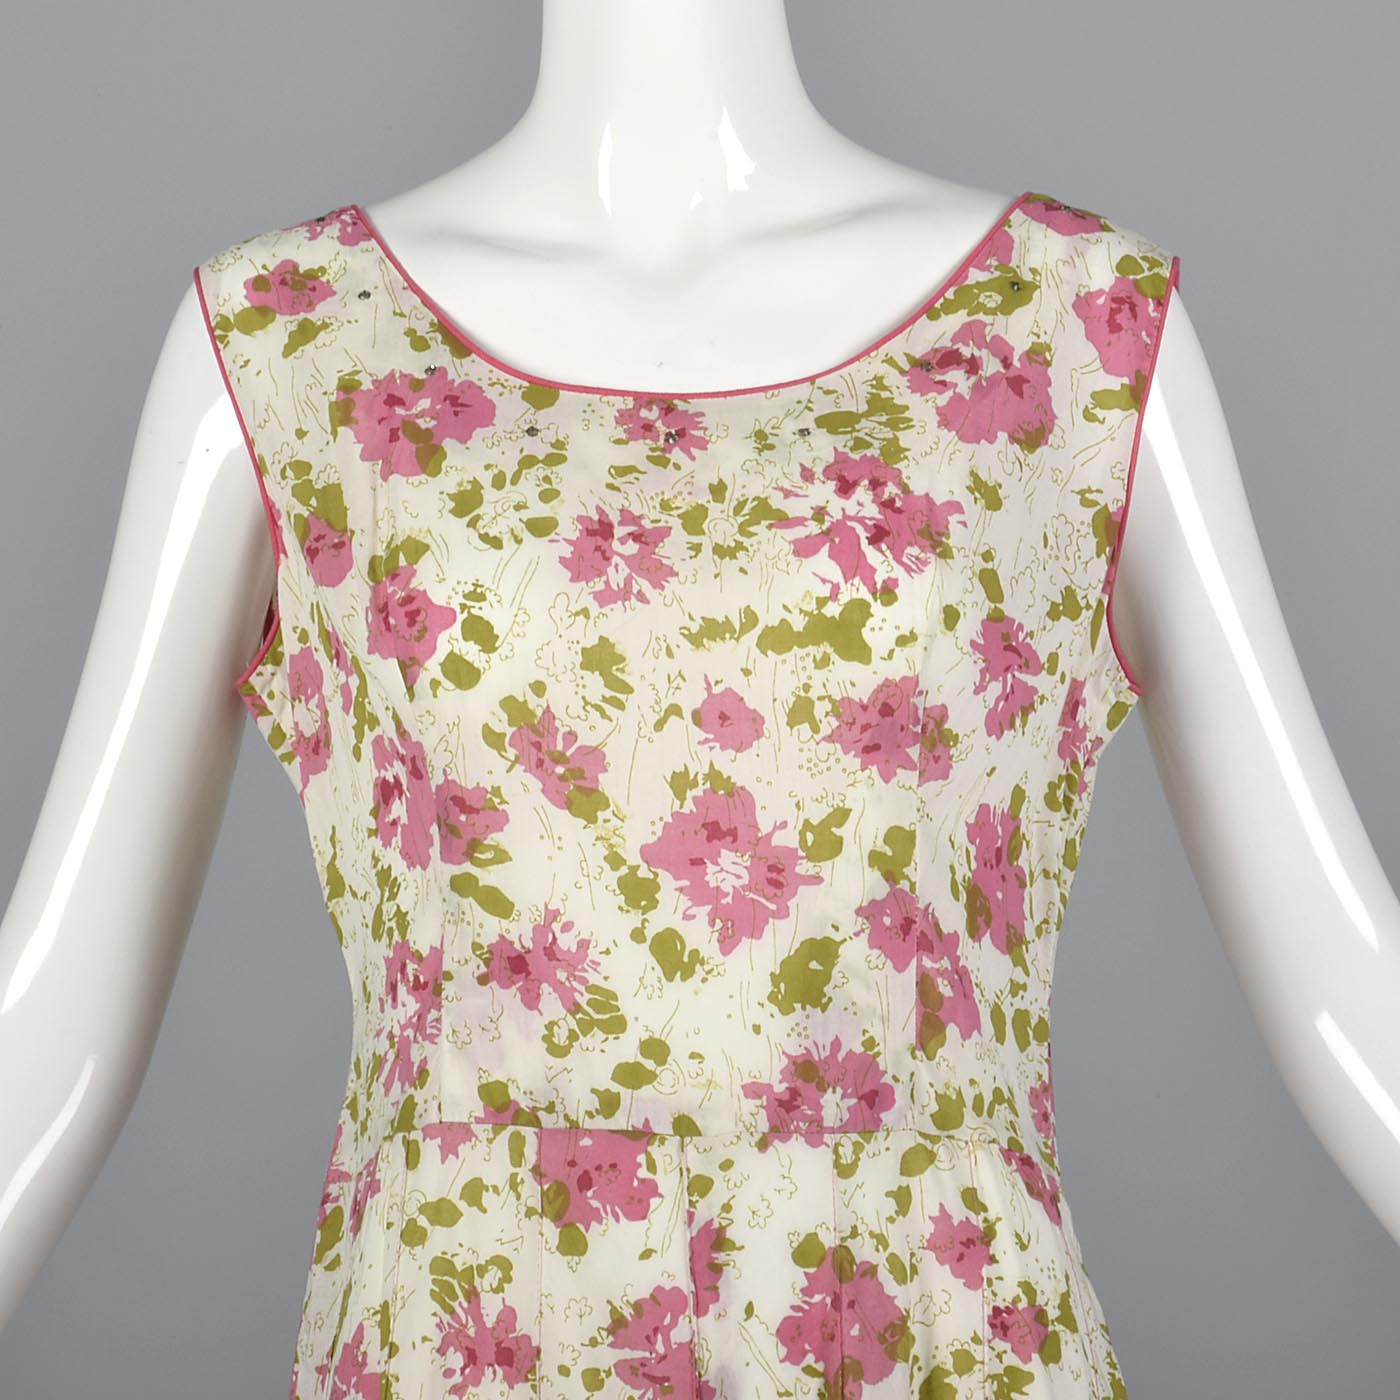 1930s Floral Cotton Slip On Dress with Rhinestone Detail